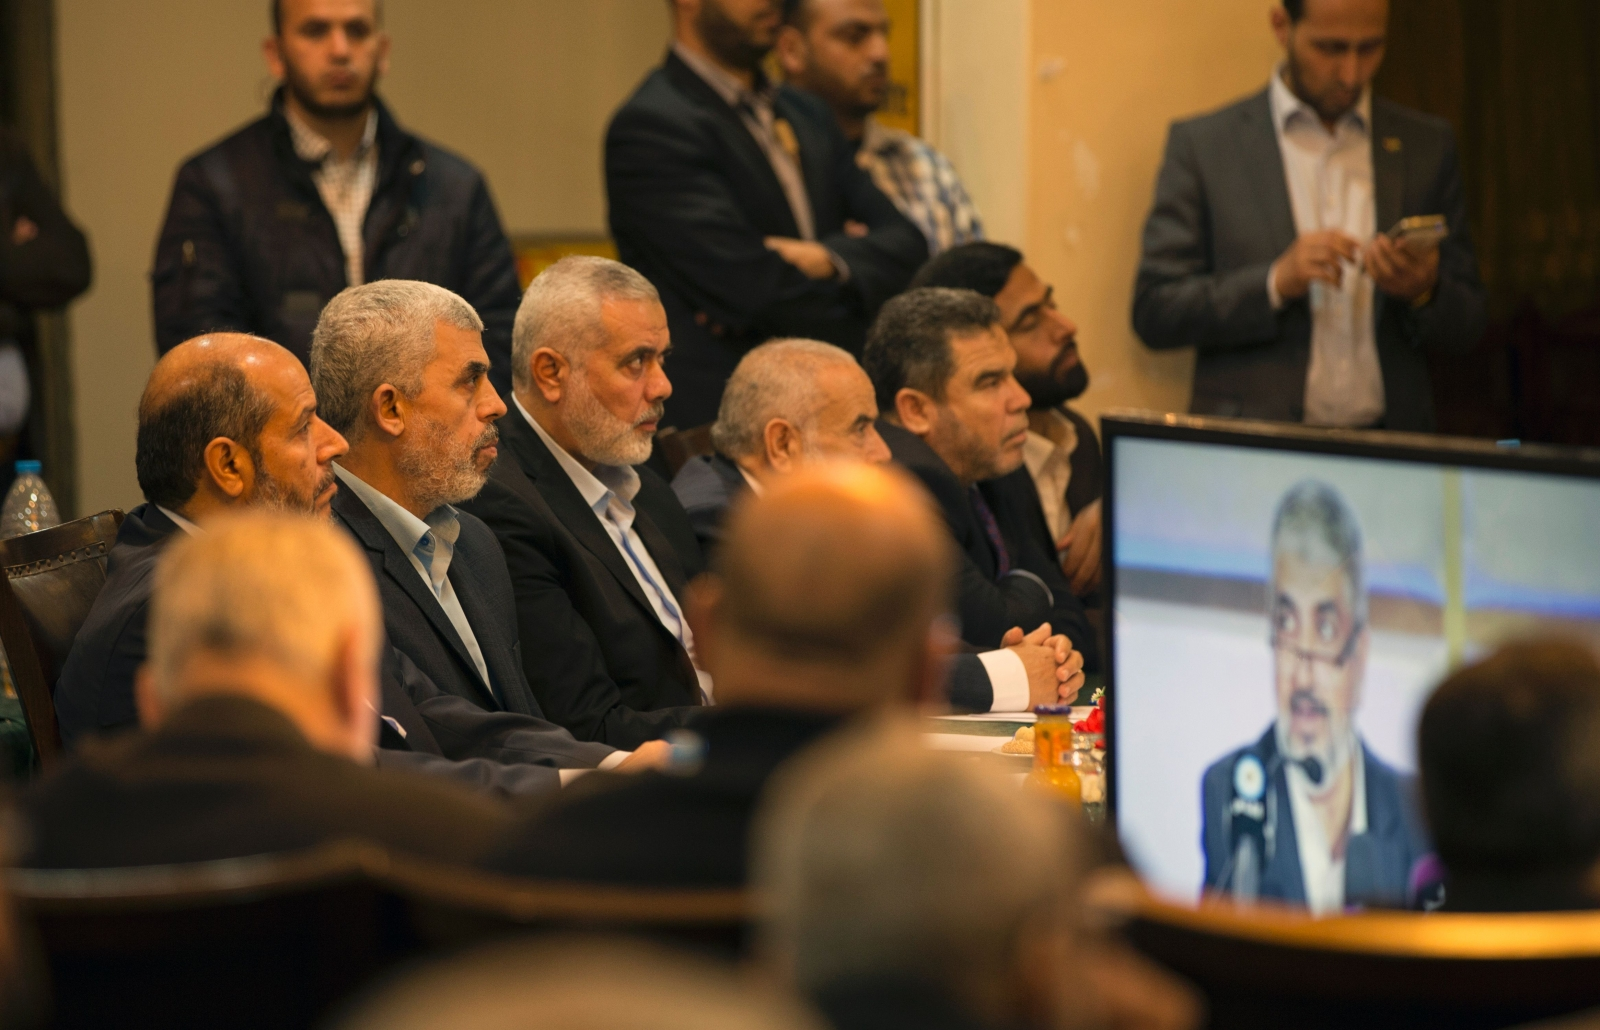 Hamas leader heads to Egypt for rare talks with officials